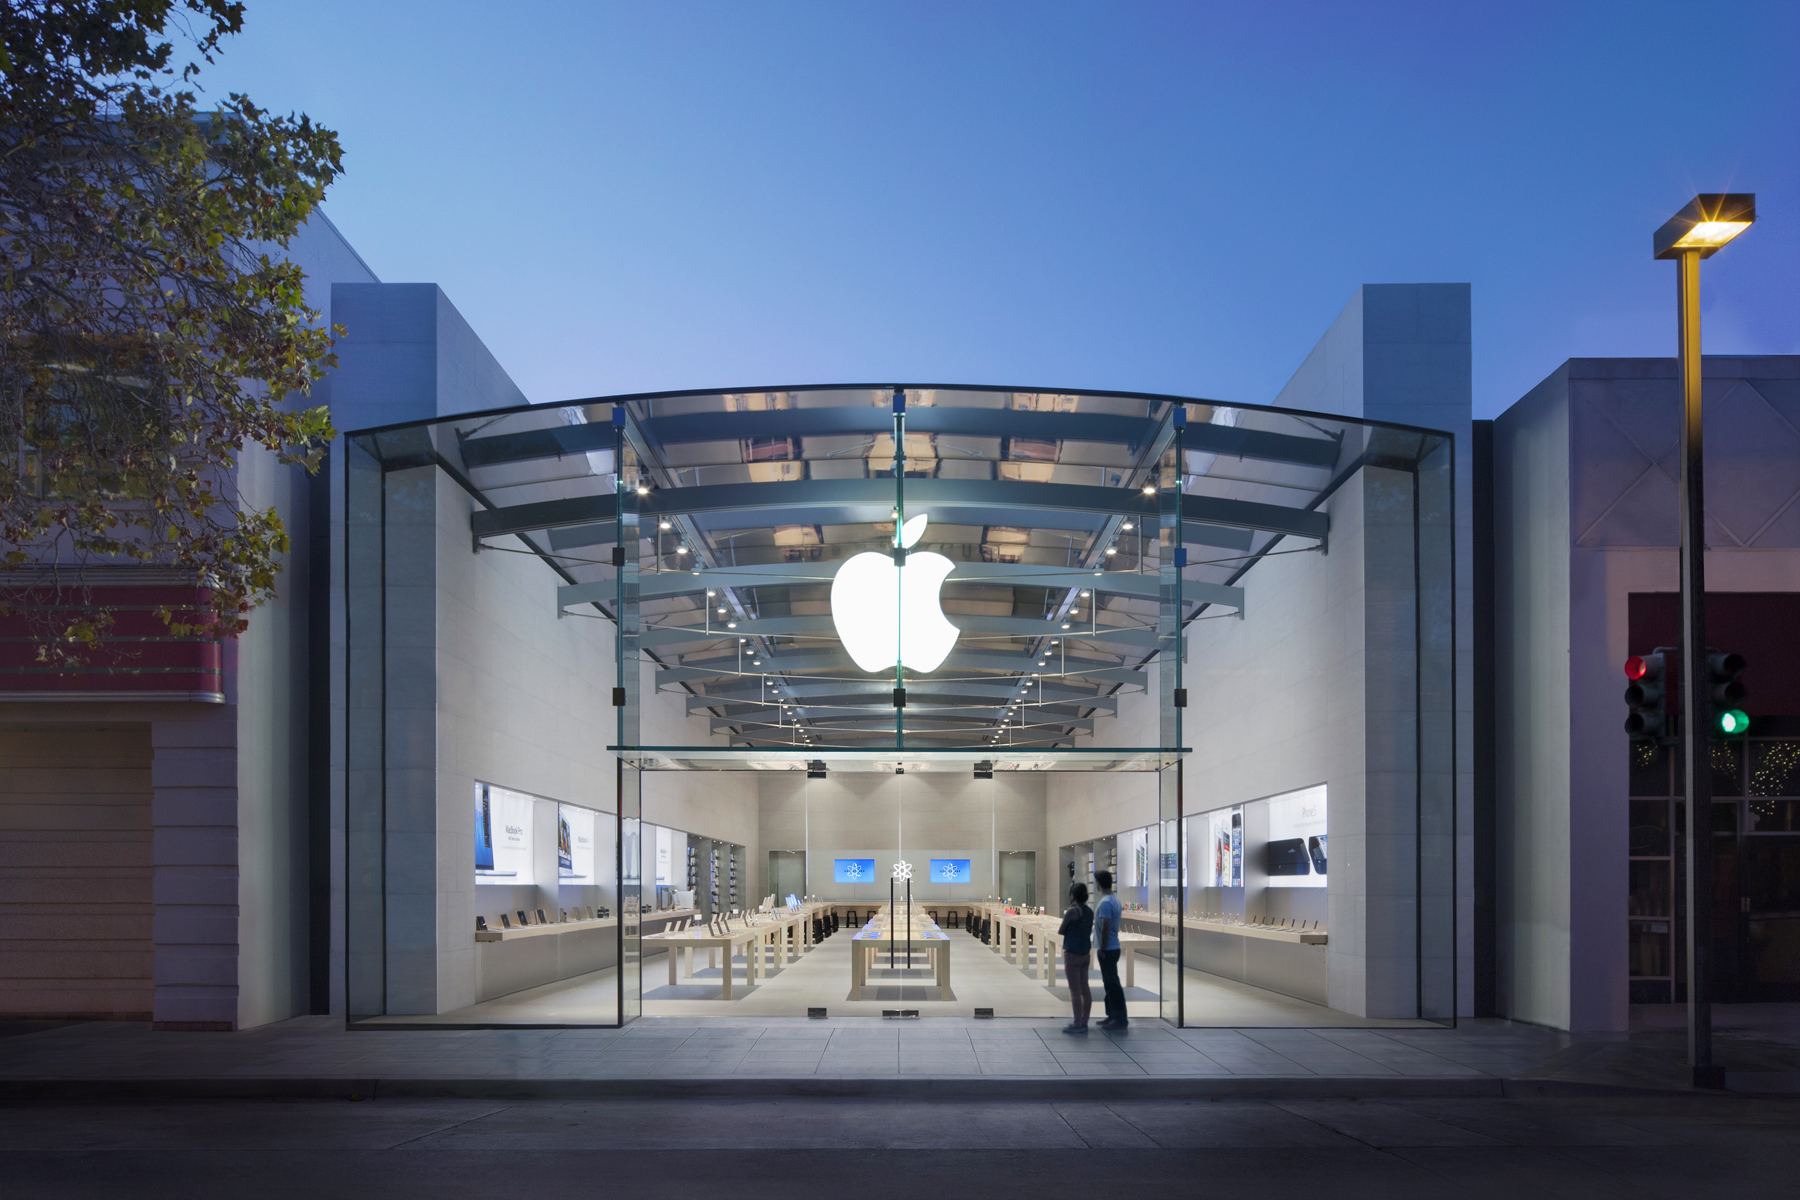 Apple's Bob Mansfield returns to lead Project Titan, sources claim